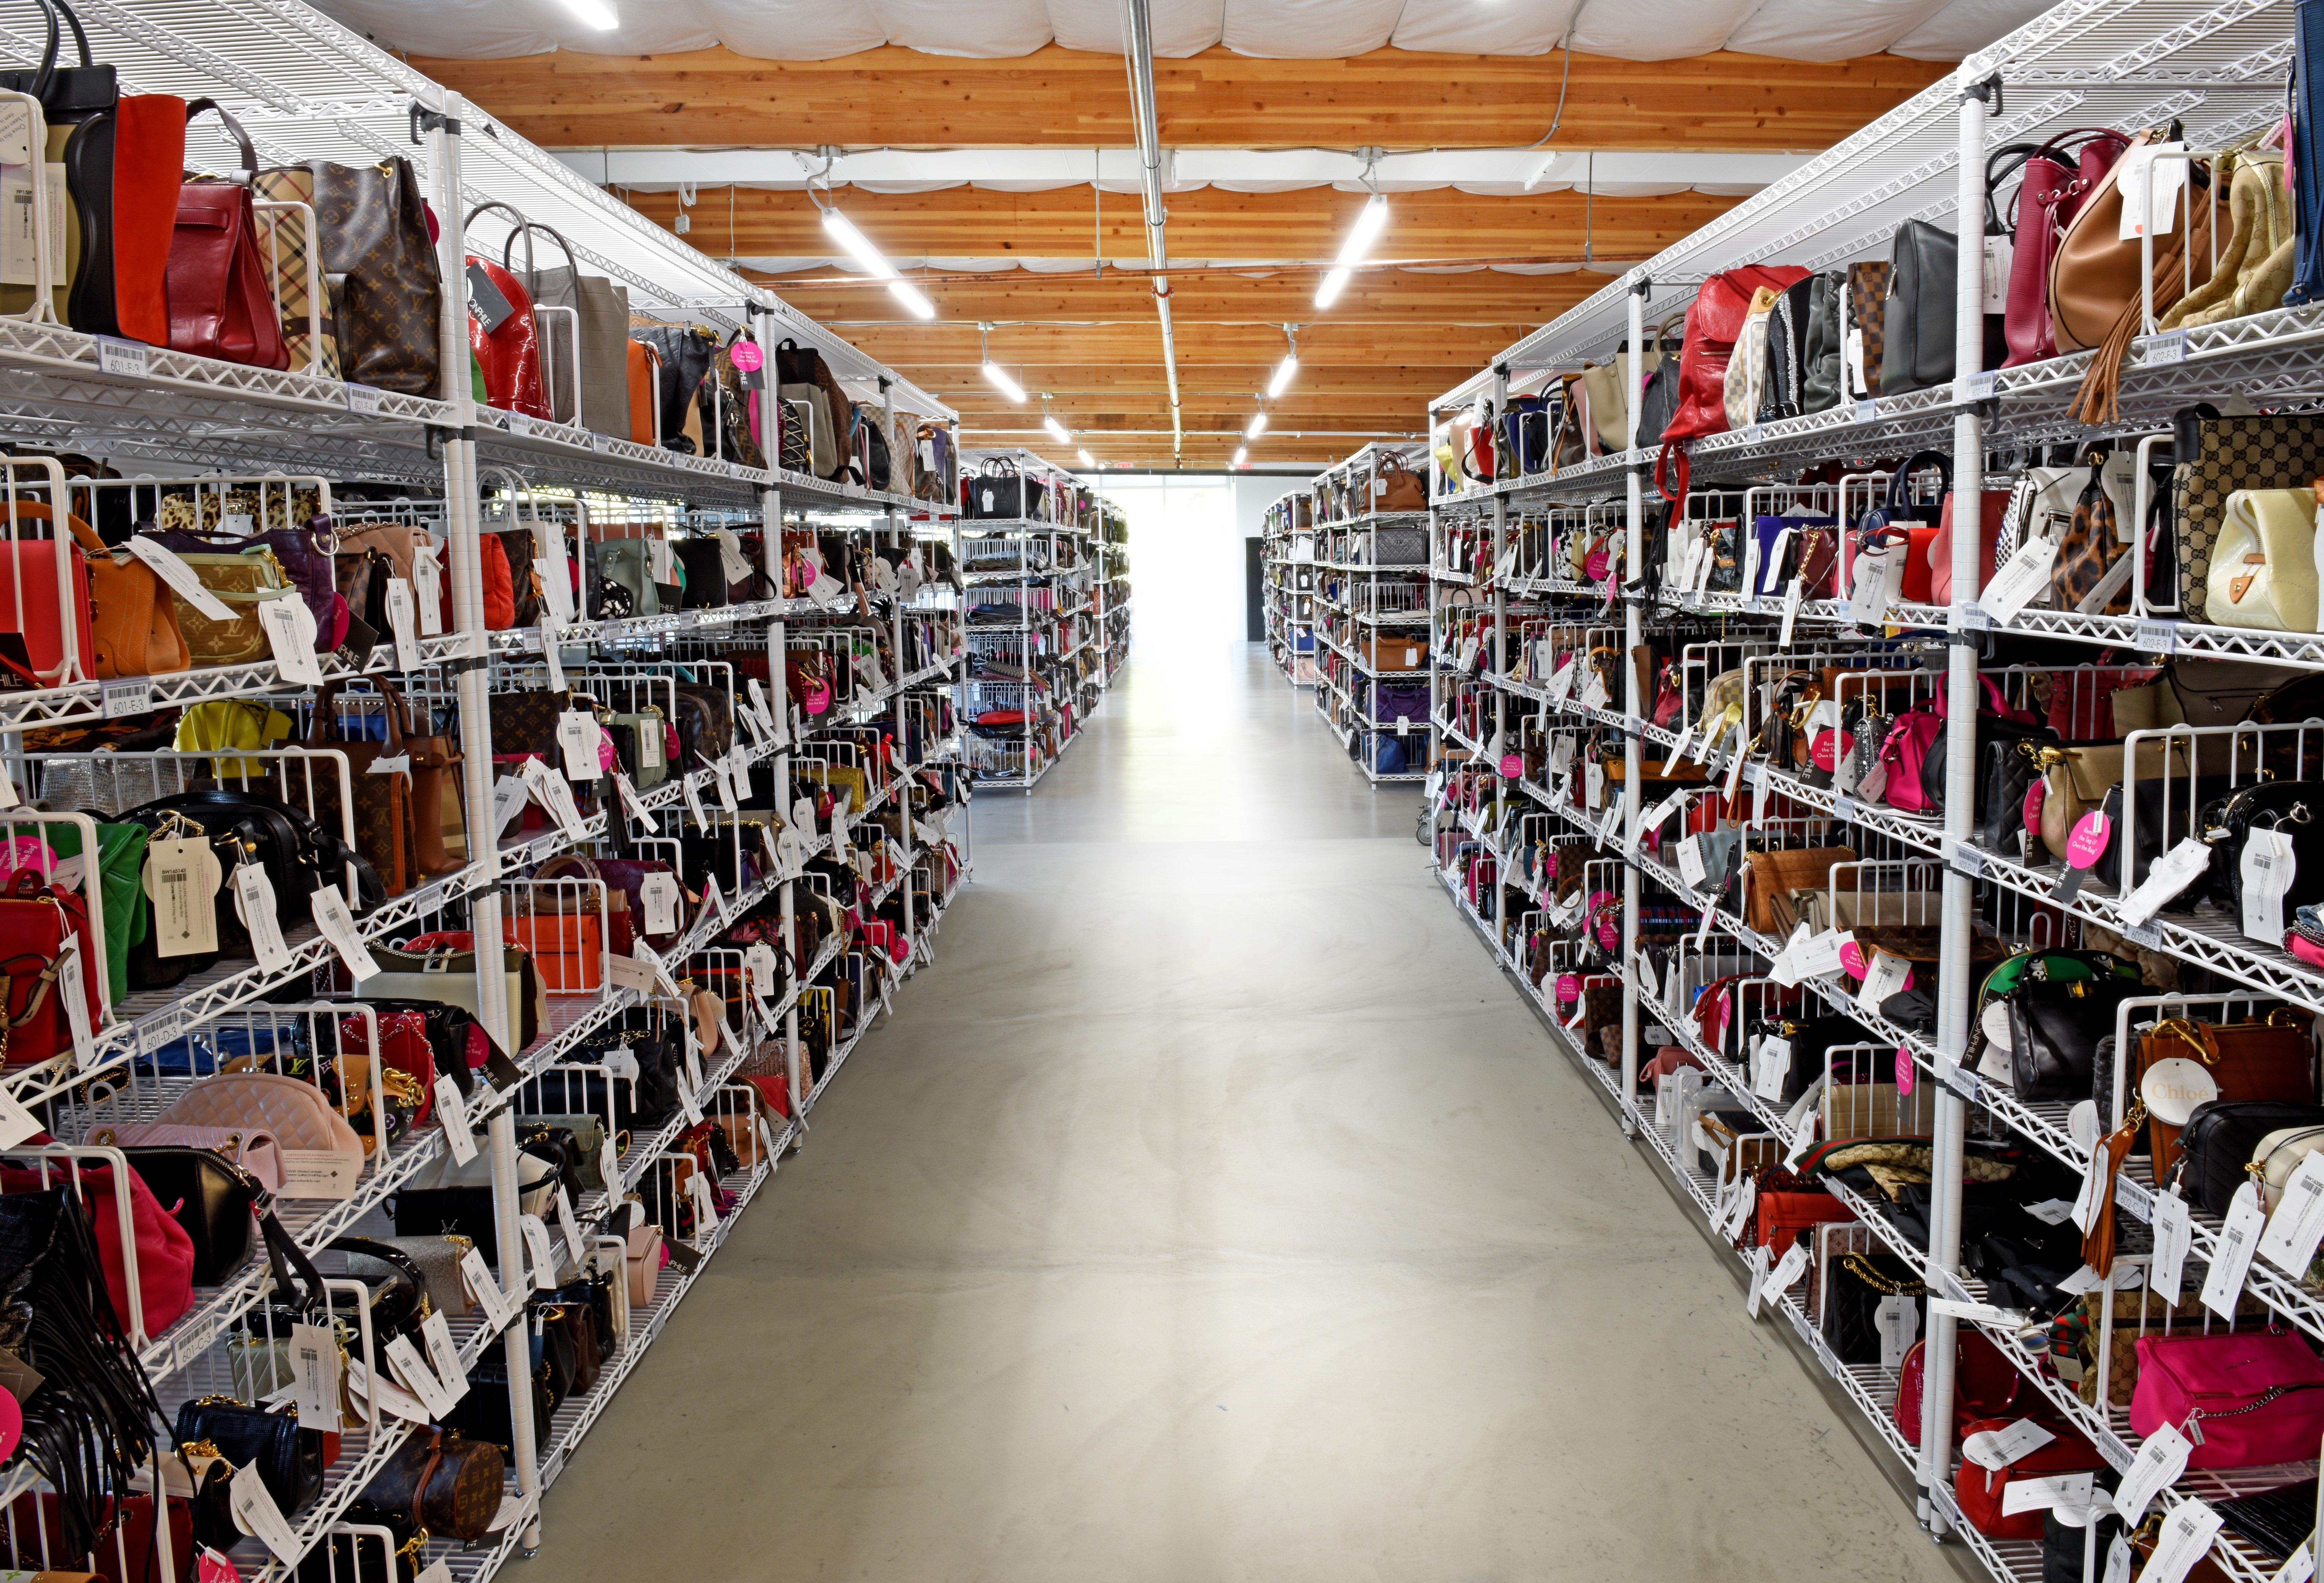 Fashionphile's Carlsbad headquarters with handbags as far as the eye can see. The new Moonachie, N.J. facility will have a similar layout.